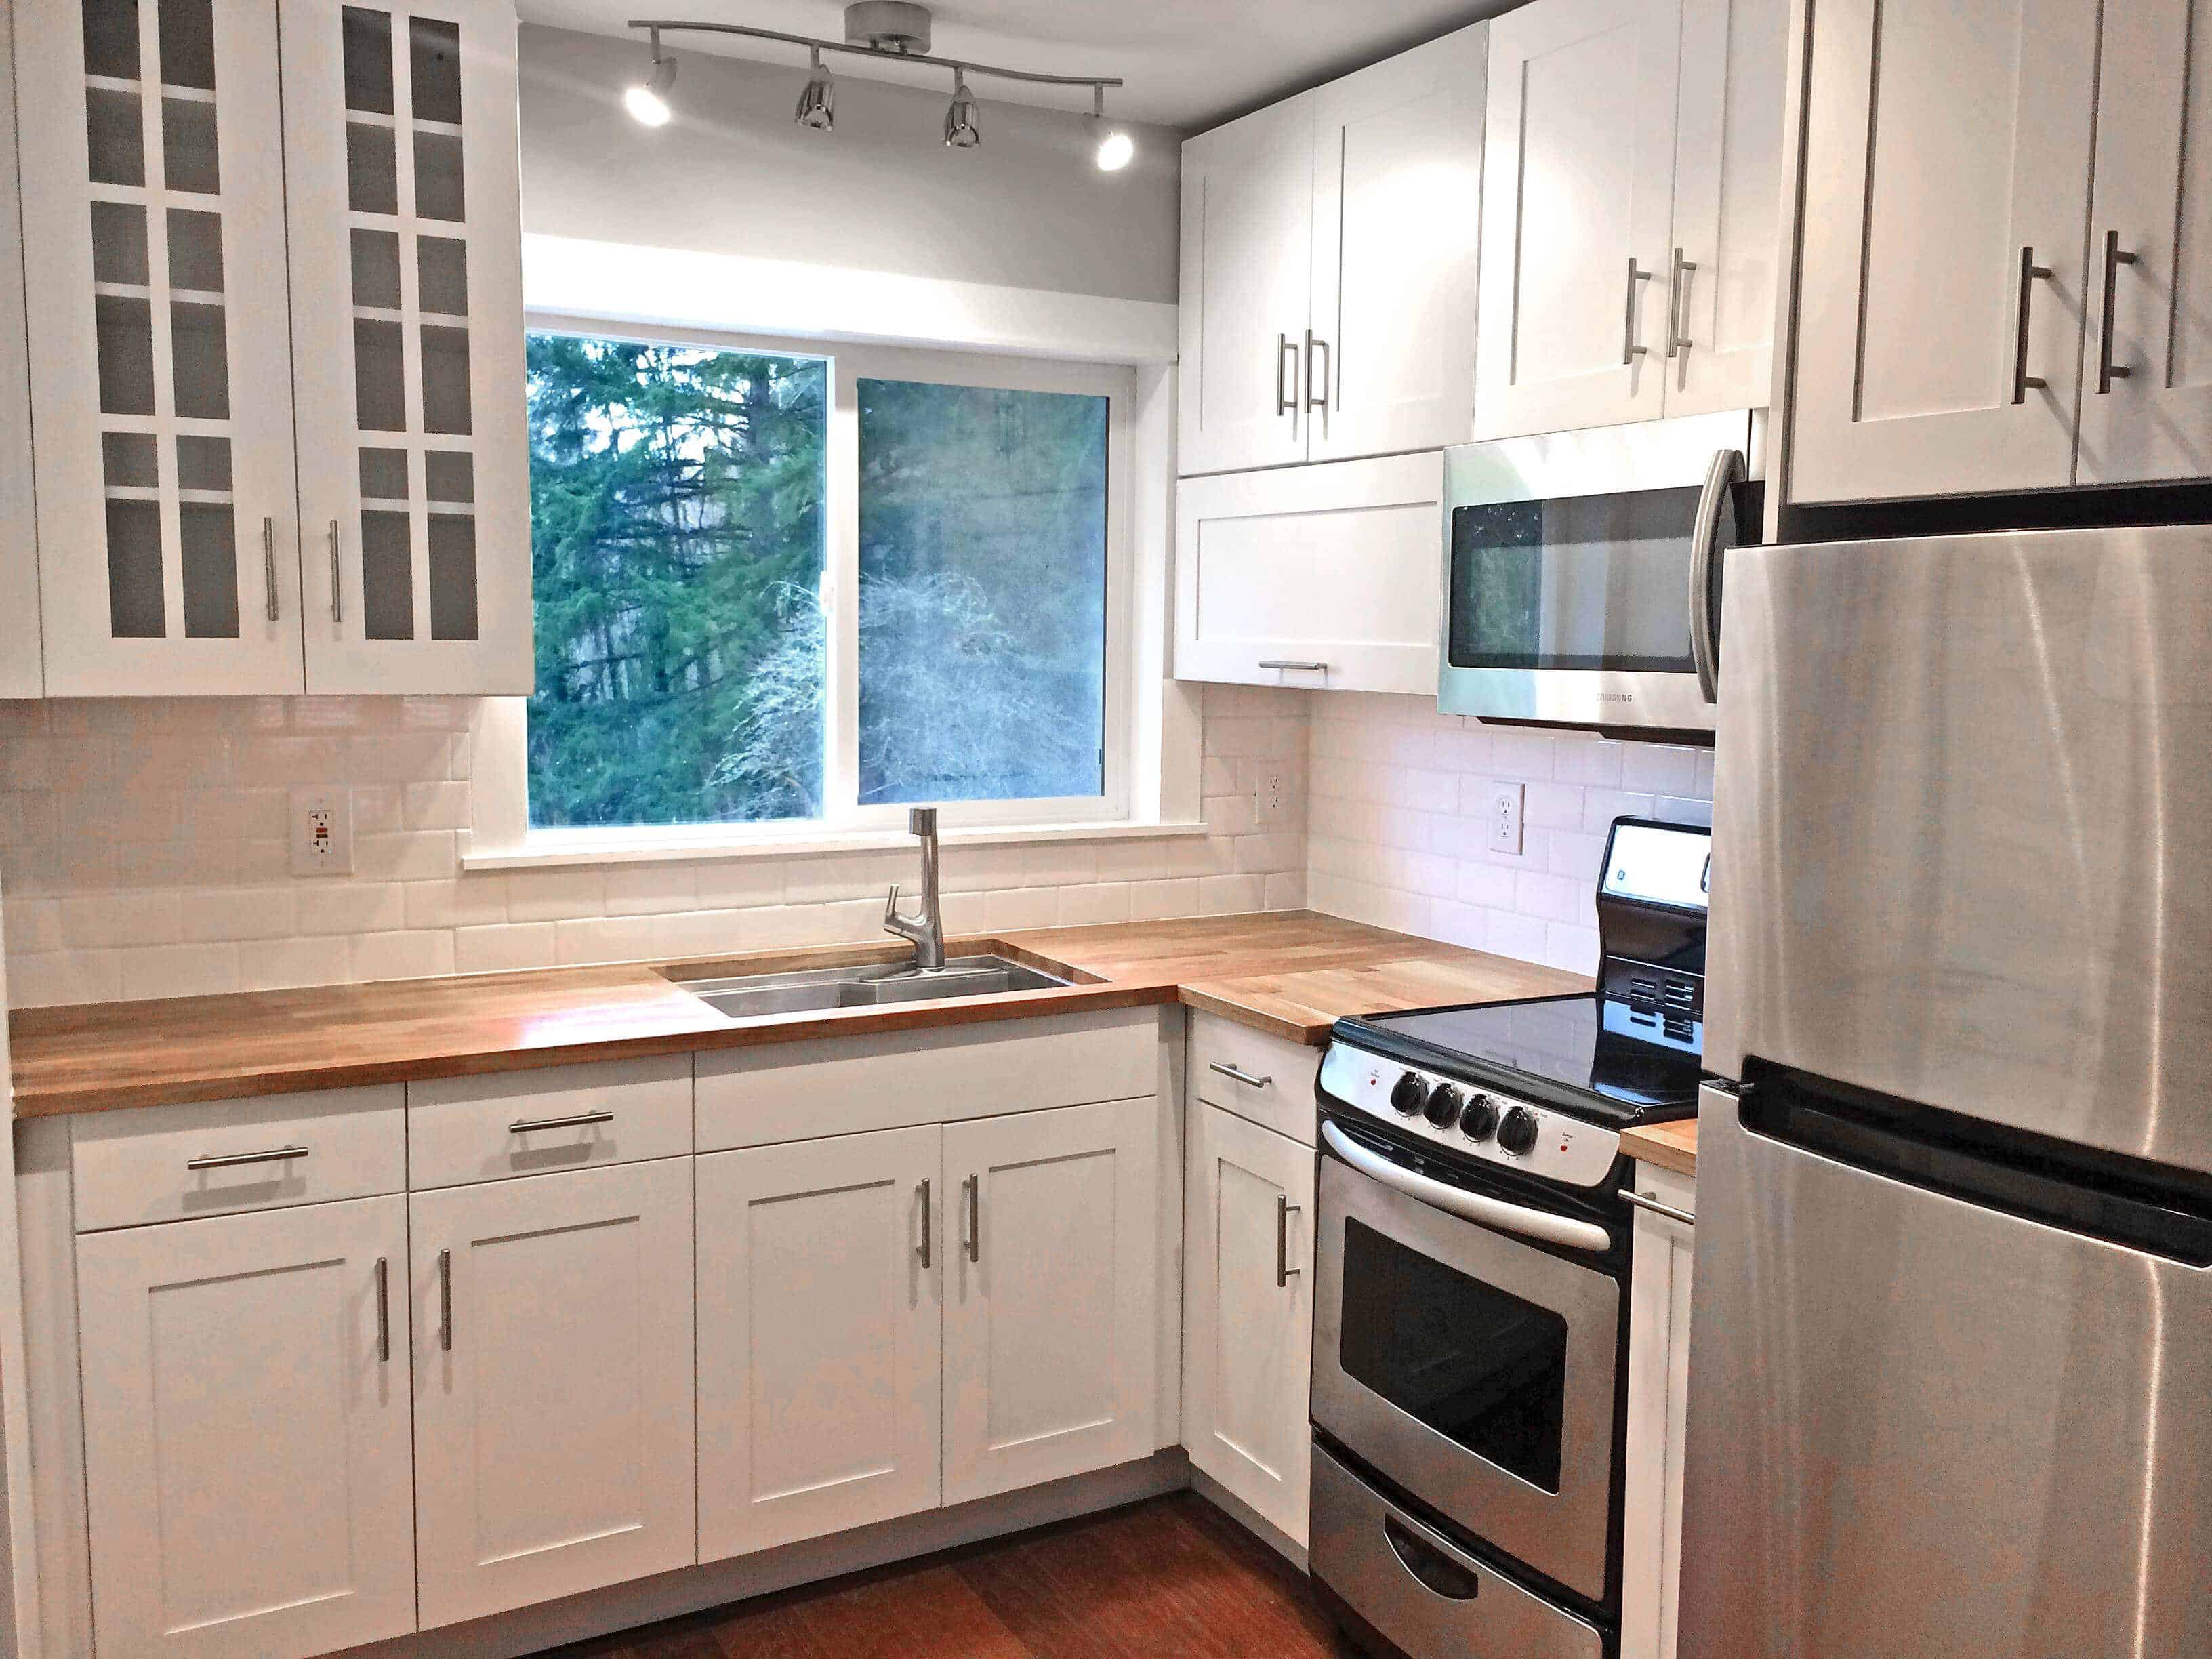 bellmont kitchen cabinets review remodel renovation diy atg stores